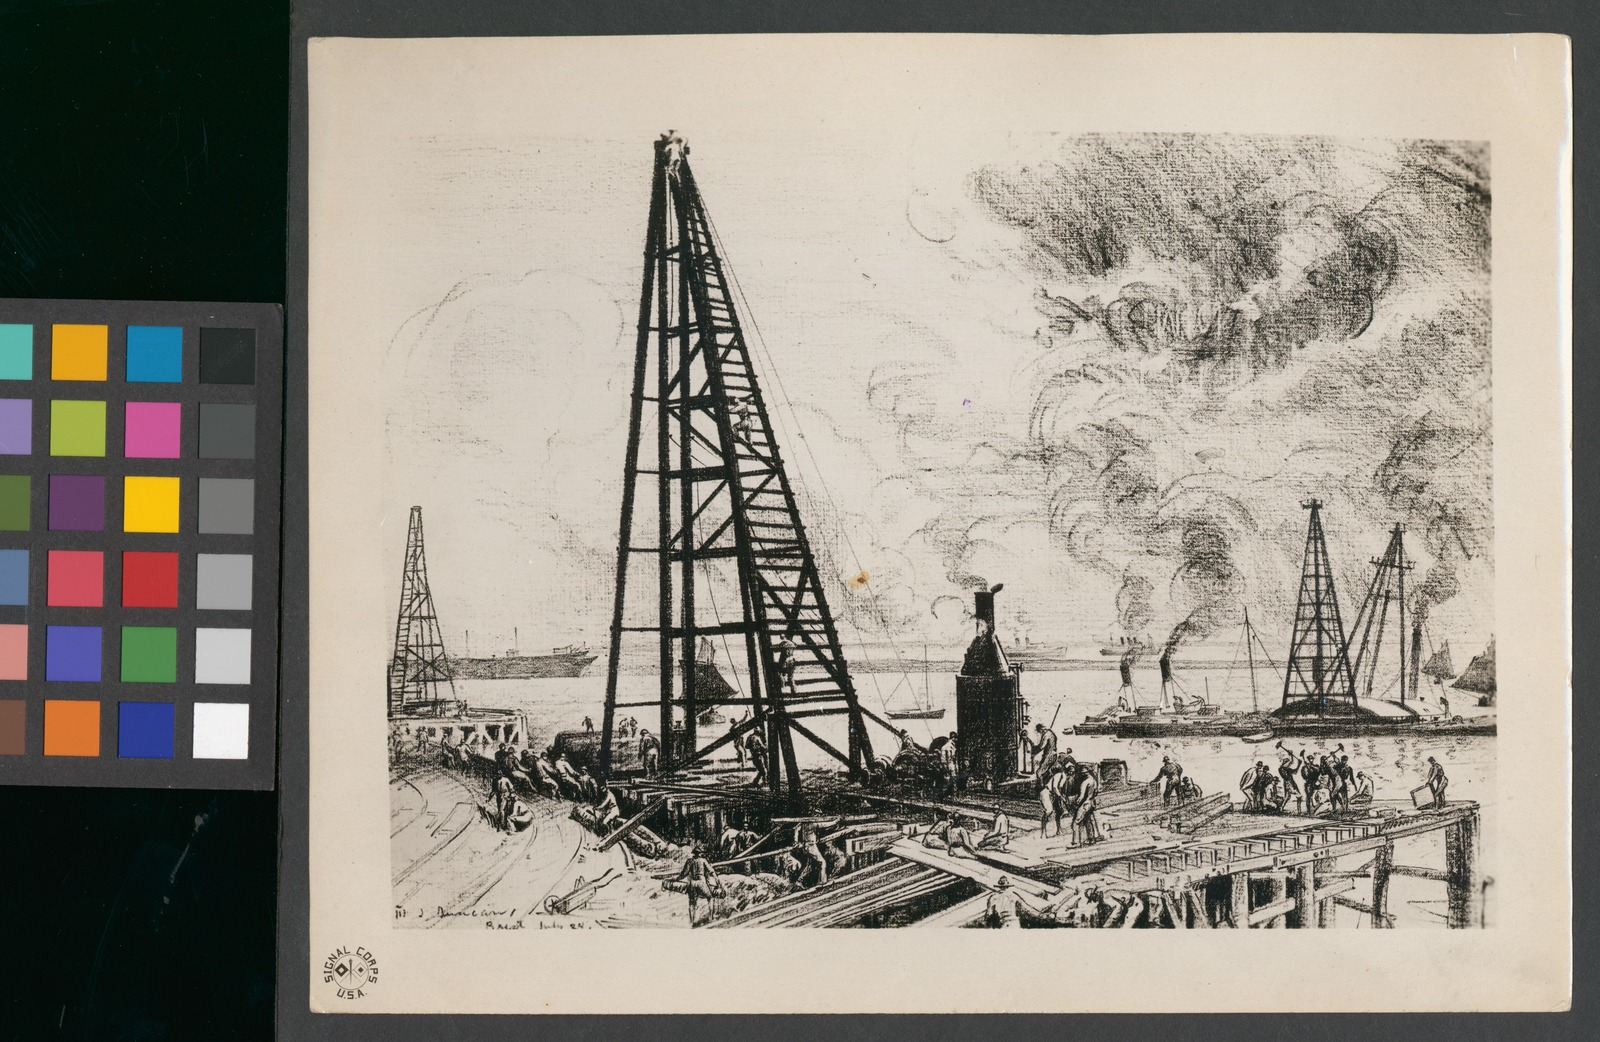 The construction of docks at Brest by the U.S. Engineers. Brest, Finistere, France.